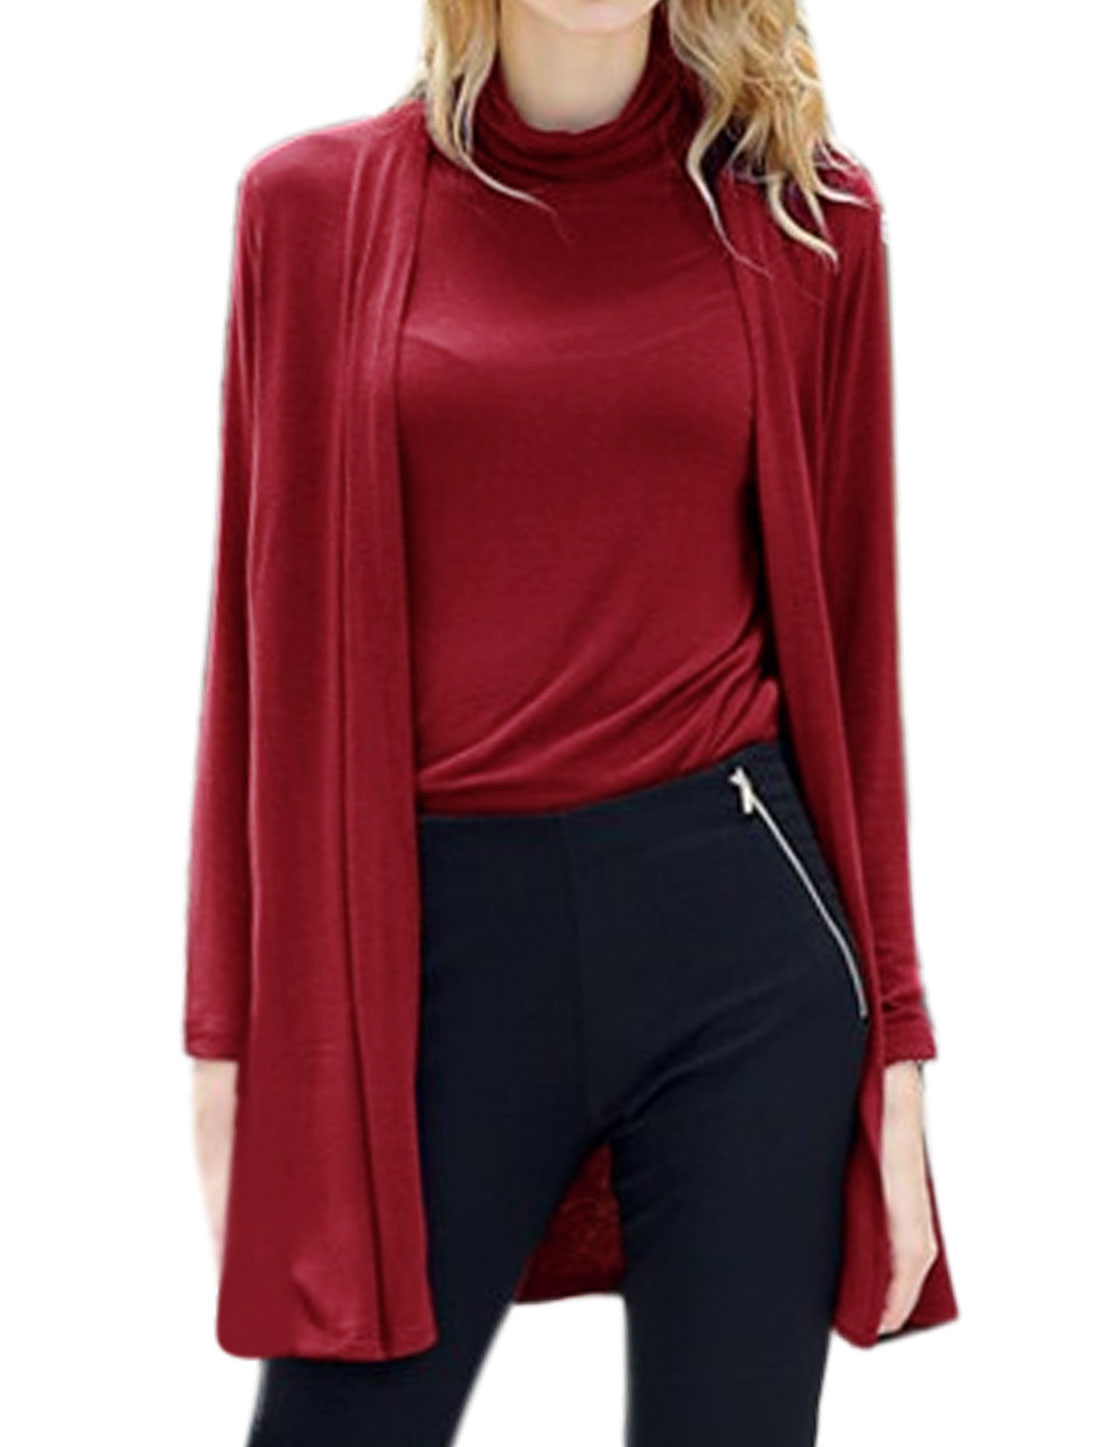 Women Turtle Neck Top w Long Sleeve Front Opening Tunic Cardigan Red M